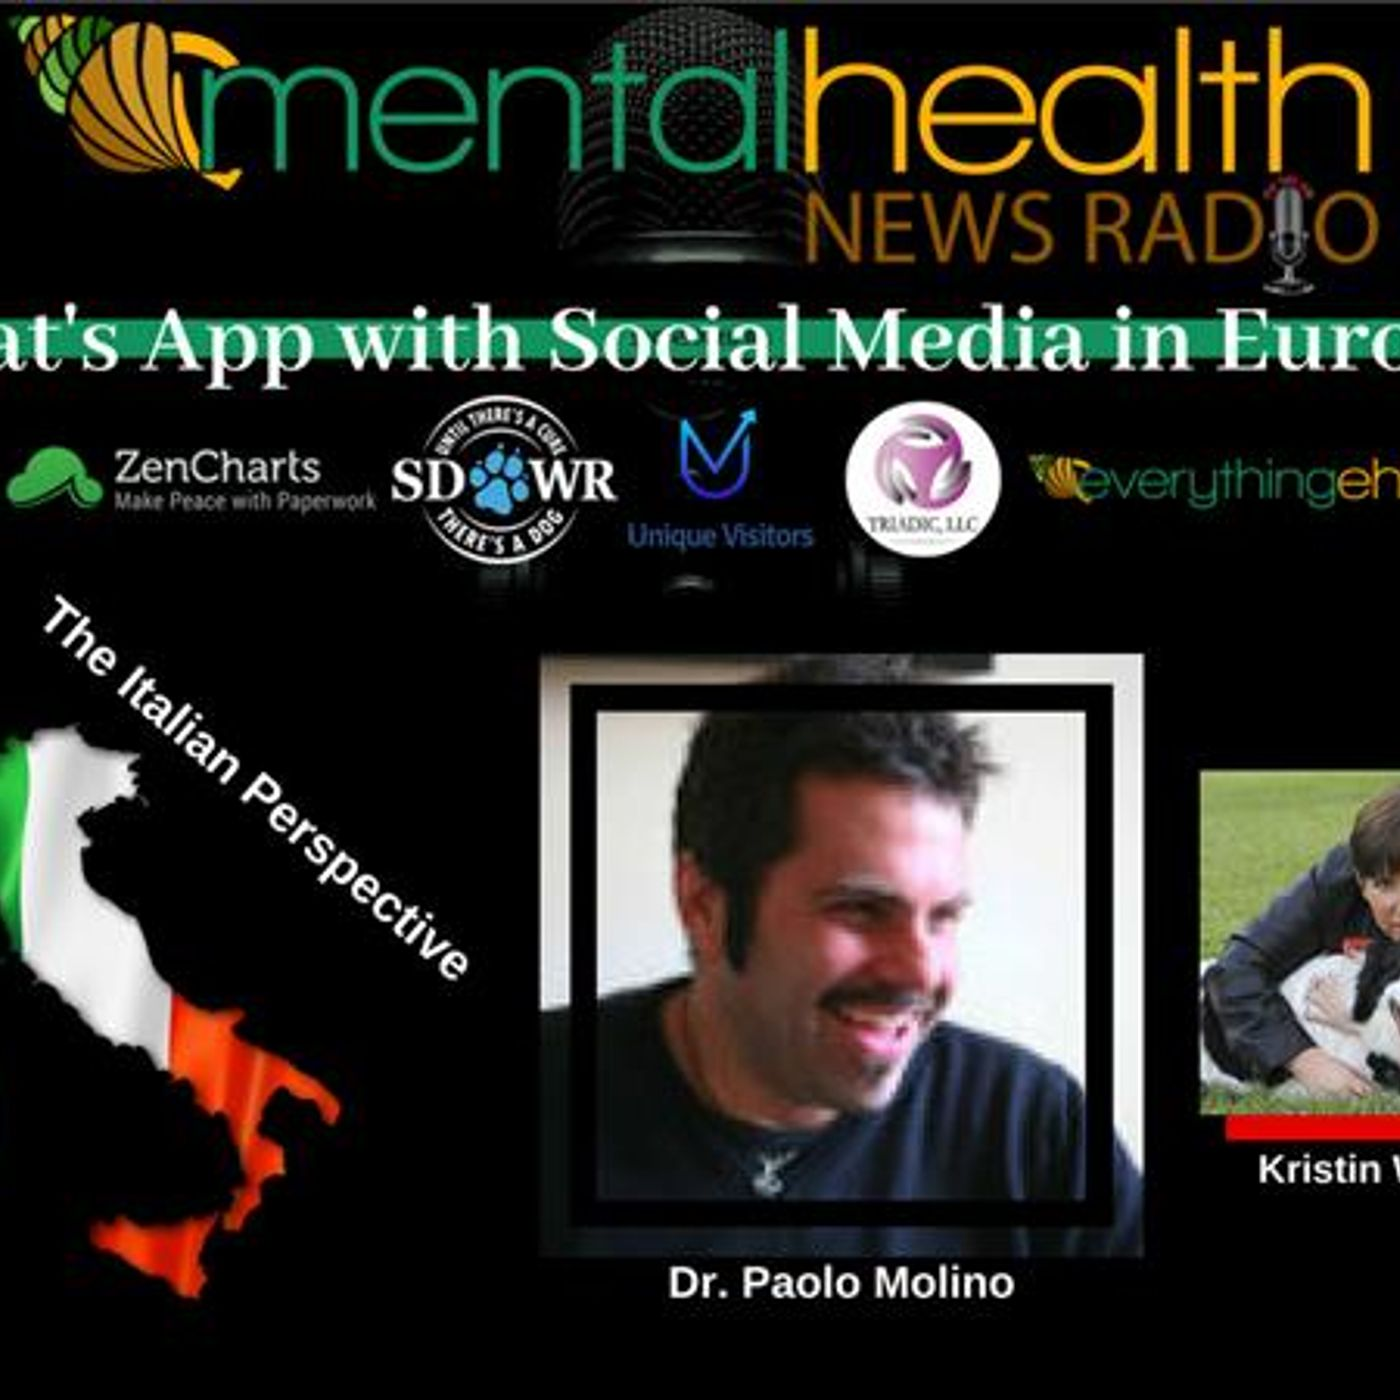 Mental Health News Radio - What's App With Social Media in Europe with Dr. Paolo Molino